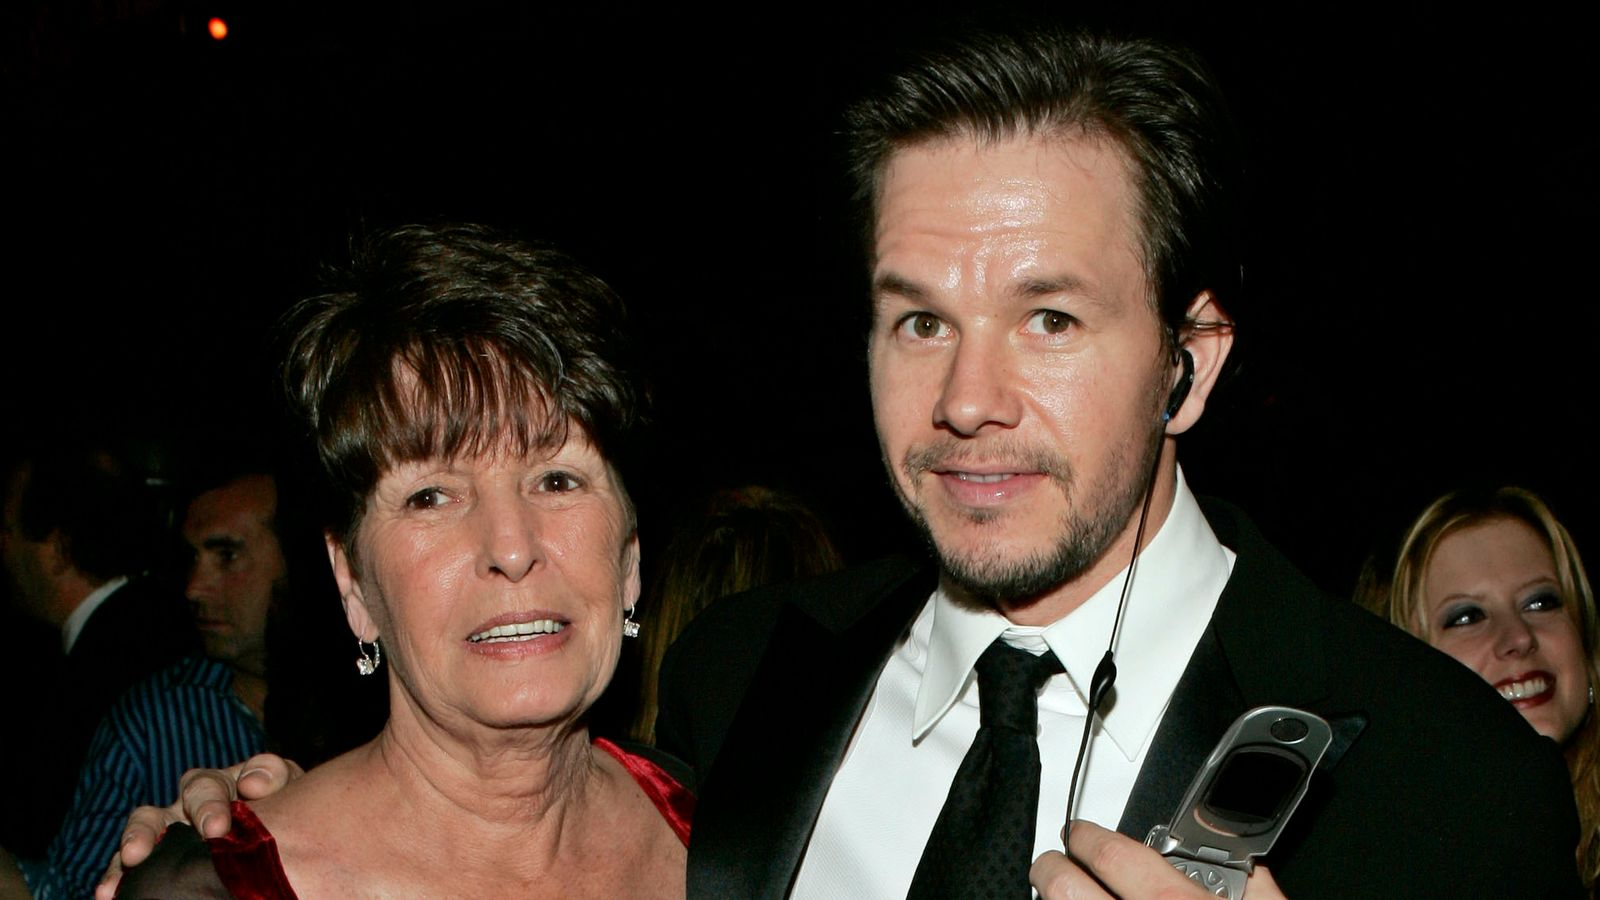 Mark Wahlberg and brother Donnie pay tribute to their mother after her death  aged 78 | Ents & Arts News | Sky News